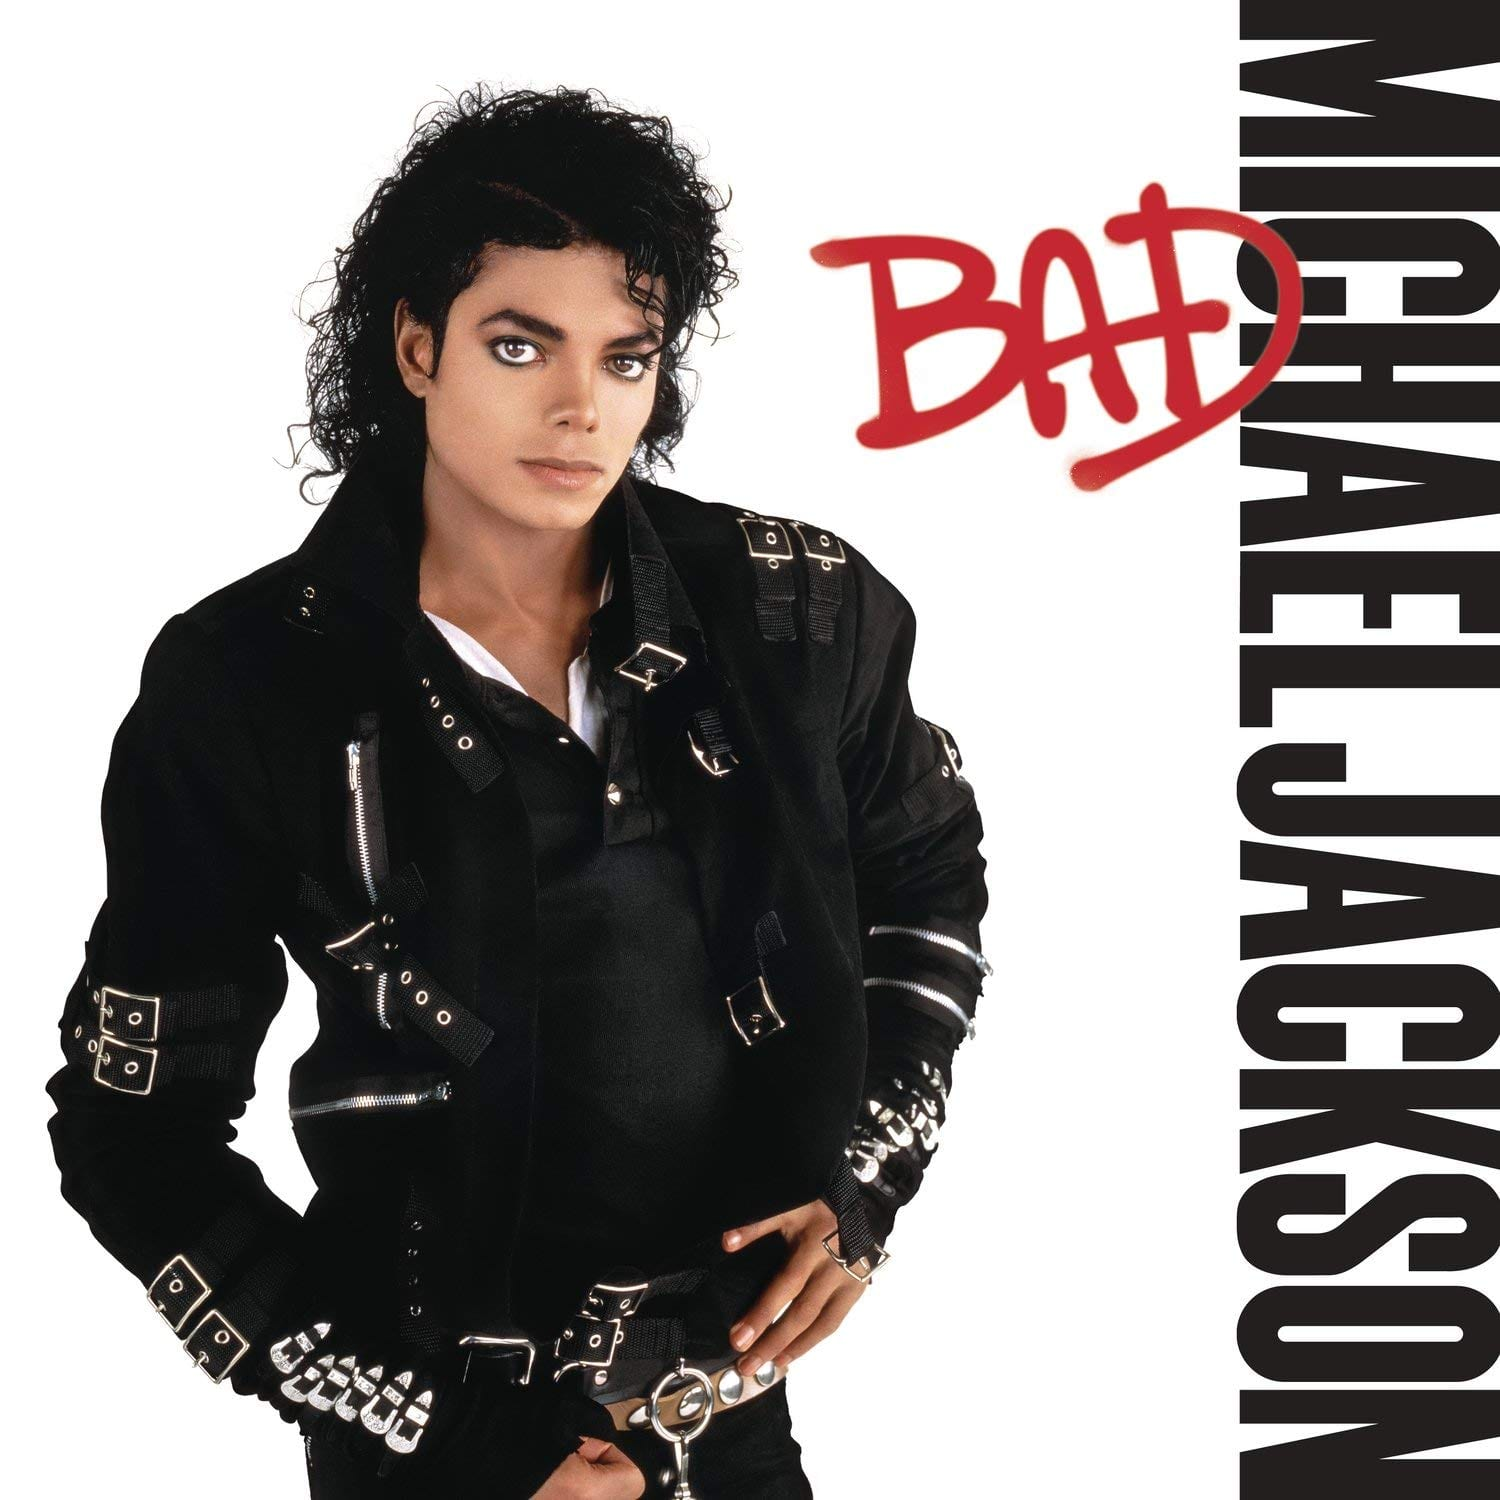 National Album Day: Bad by Michael Jackson